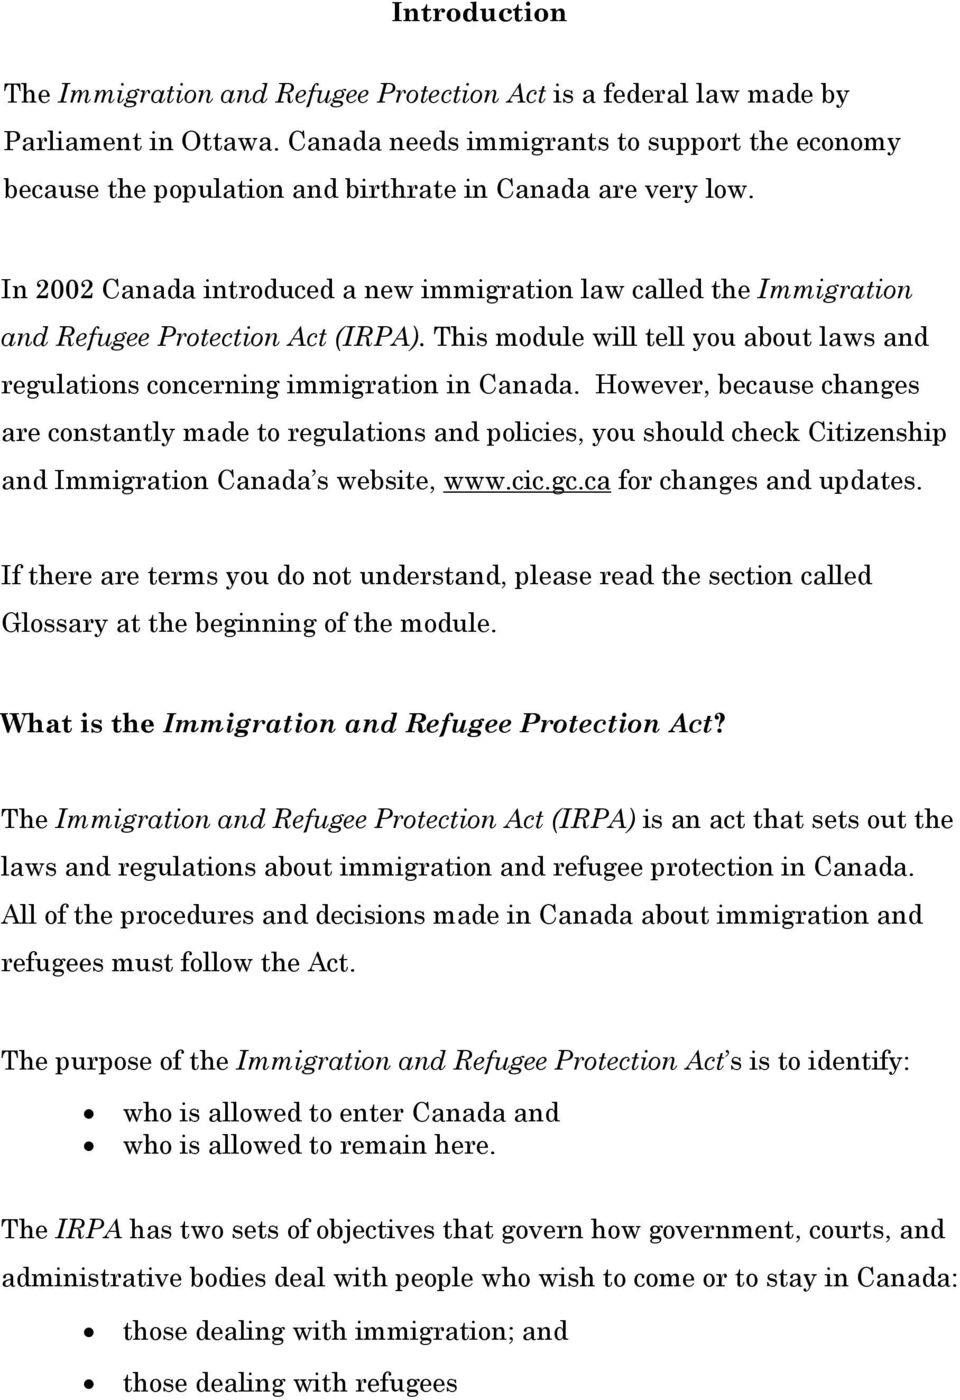 In 2002 Canada introduced a new immigration law called the Immigration and Refugee Protection Act (IRPA). This module will tell you about laws and regulations concerning immigration in Canada.